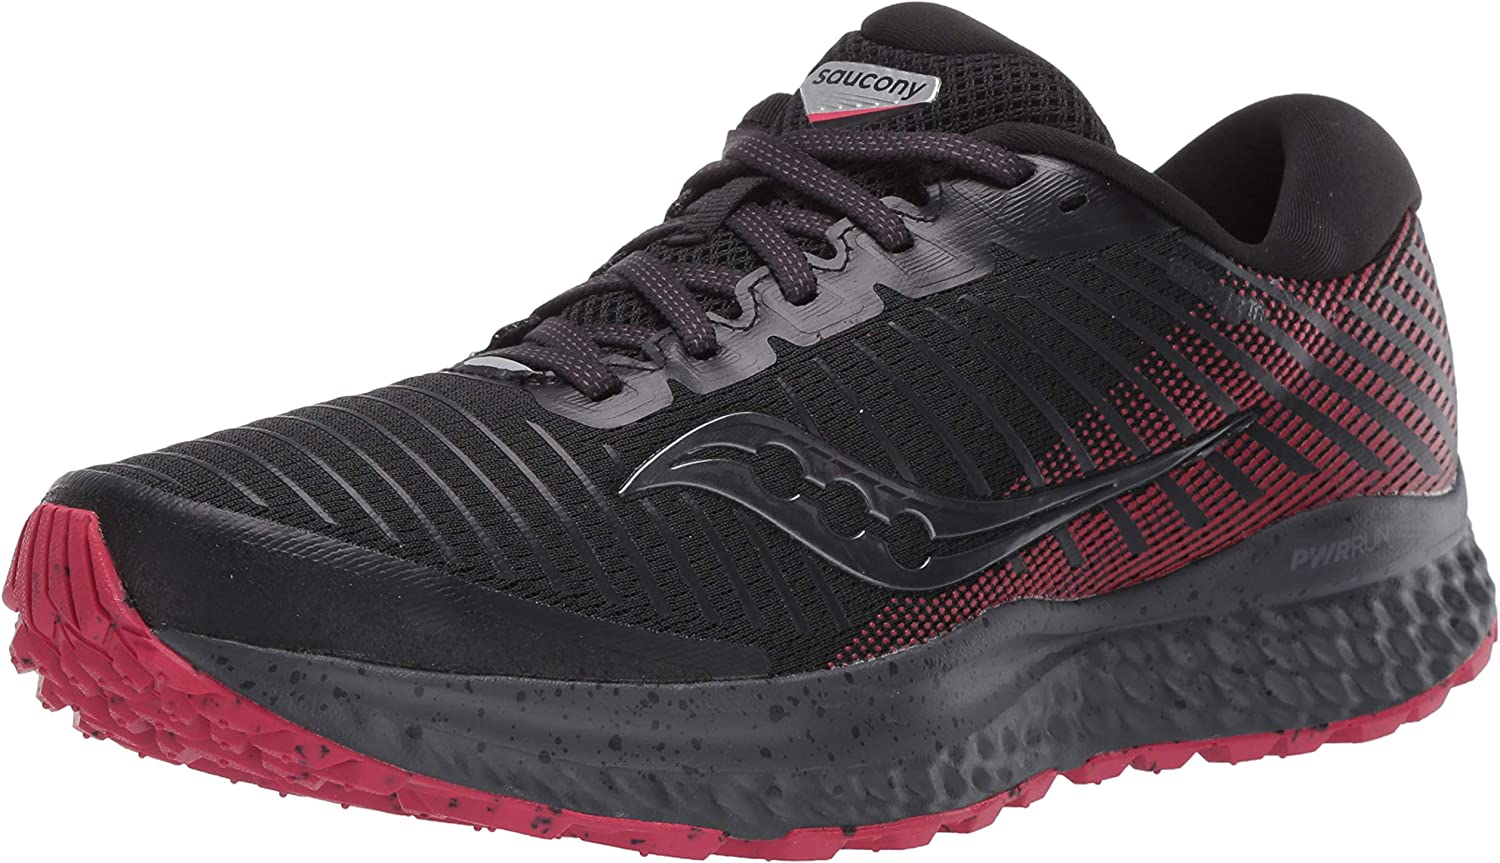 Saucony Women's Guide 13 TR Trail Running Shoe